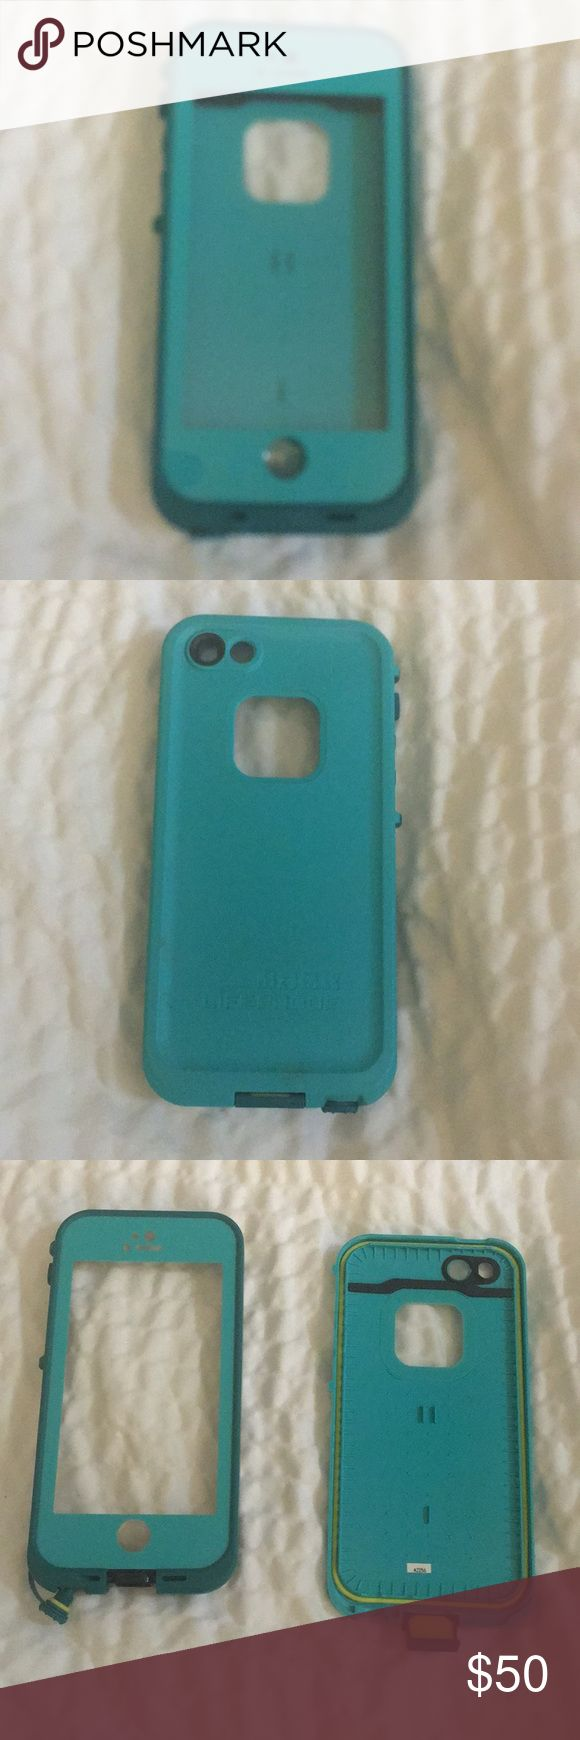 Teal LifeProof Hard IPhone 5 SE Case Waterproof Brand: LifeProof Color:Teal Hard Case Fits IPhone 5 SE Your device will be sealed from snow, dirt, dust and ice with this case on.   It has a built in scratch protector and will protect your touch screen.   With this case fitted on your phone correctly it can survive drops from up to 6.6 feet. LifeProof Accessories Phone Cases